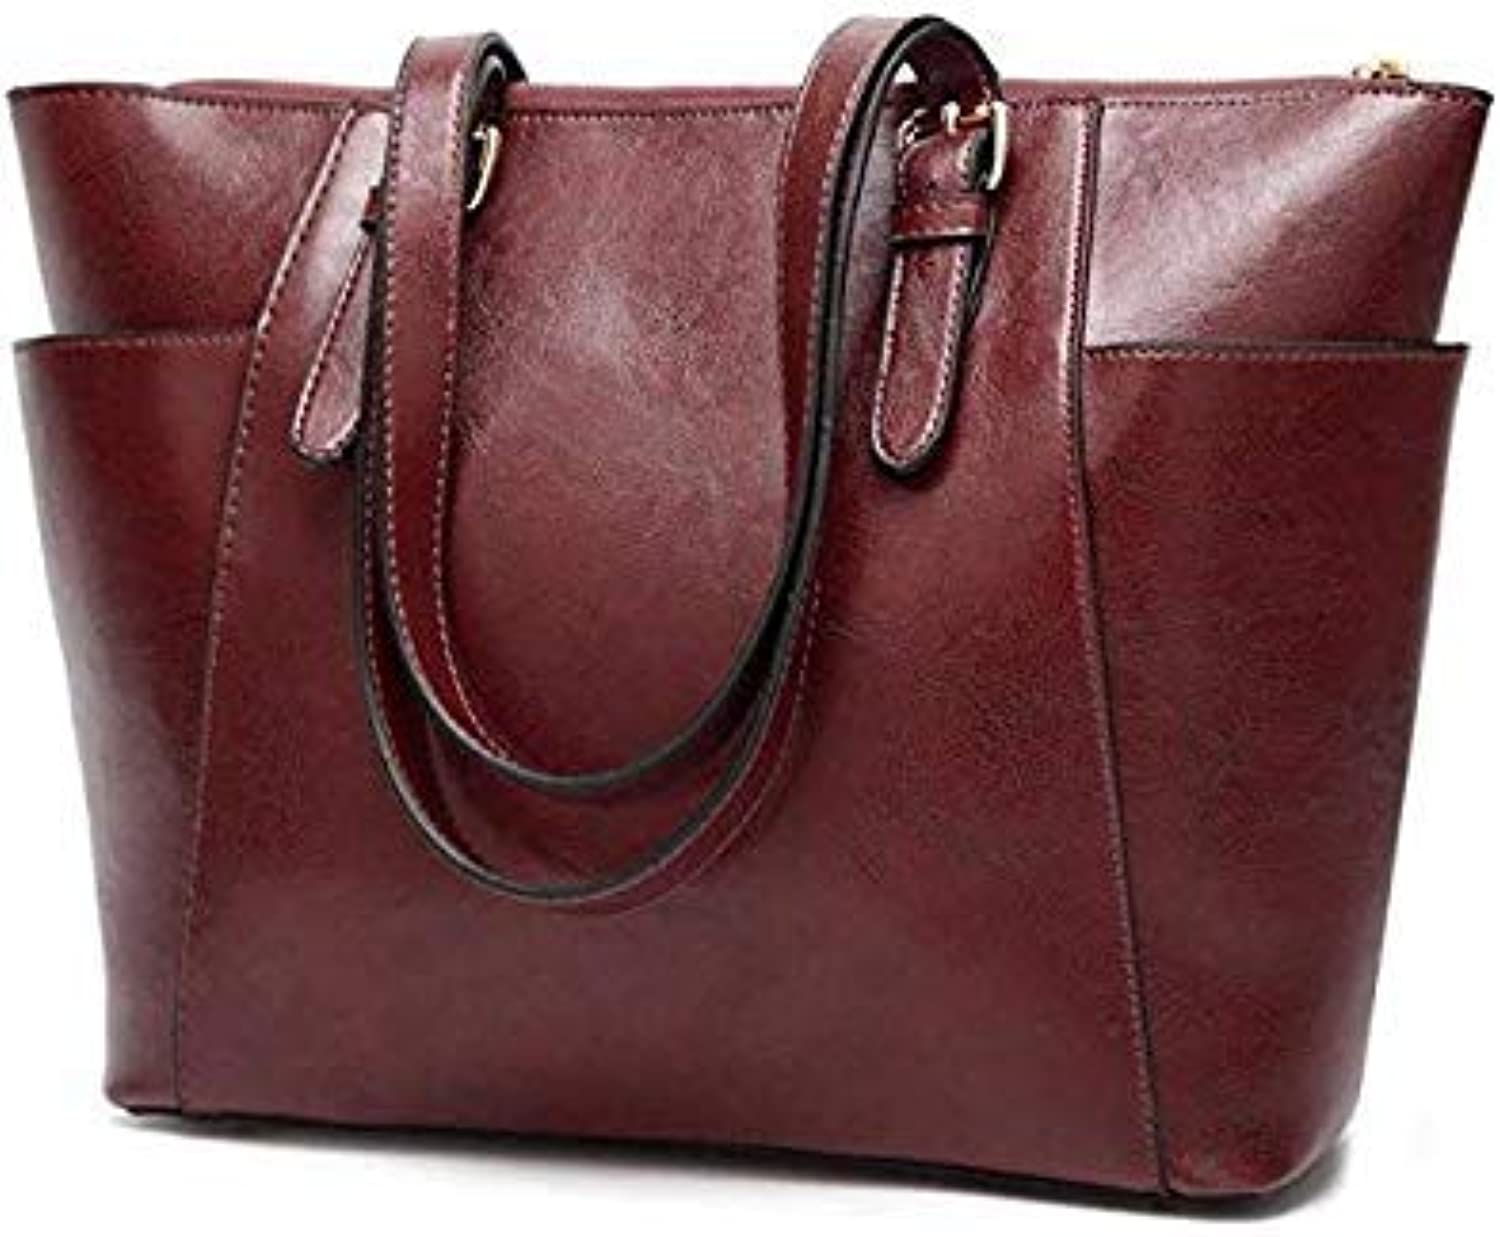 Side Pocket Design Women Messenger Bag high Quality Casual Ladies Hand Bags Oil Wax Leather Shoulder Bag Large Capacity Tote Bag Coffee